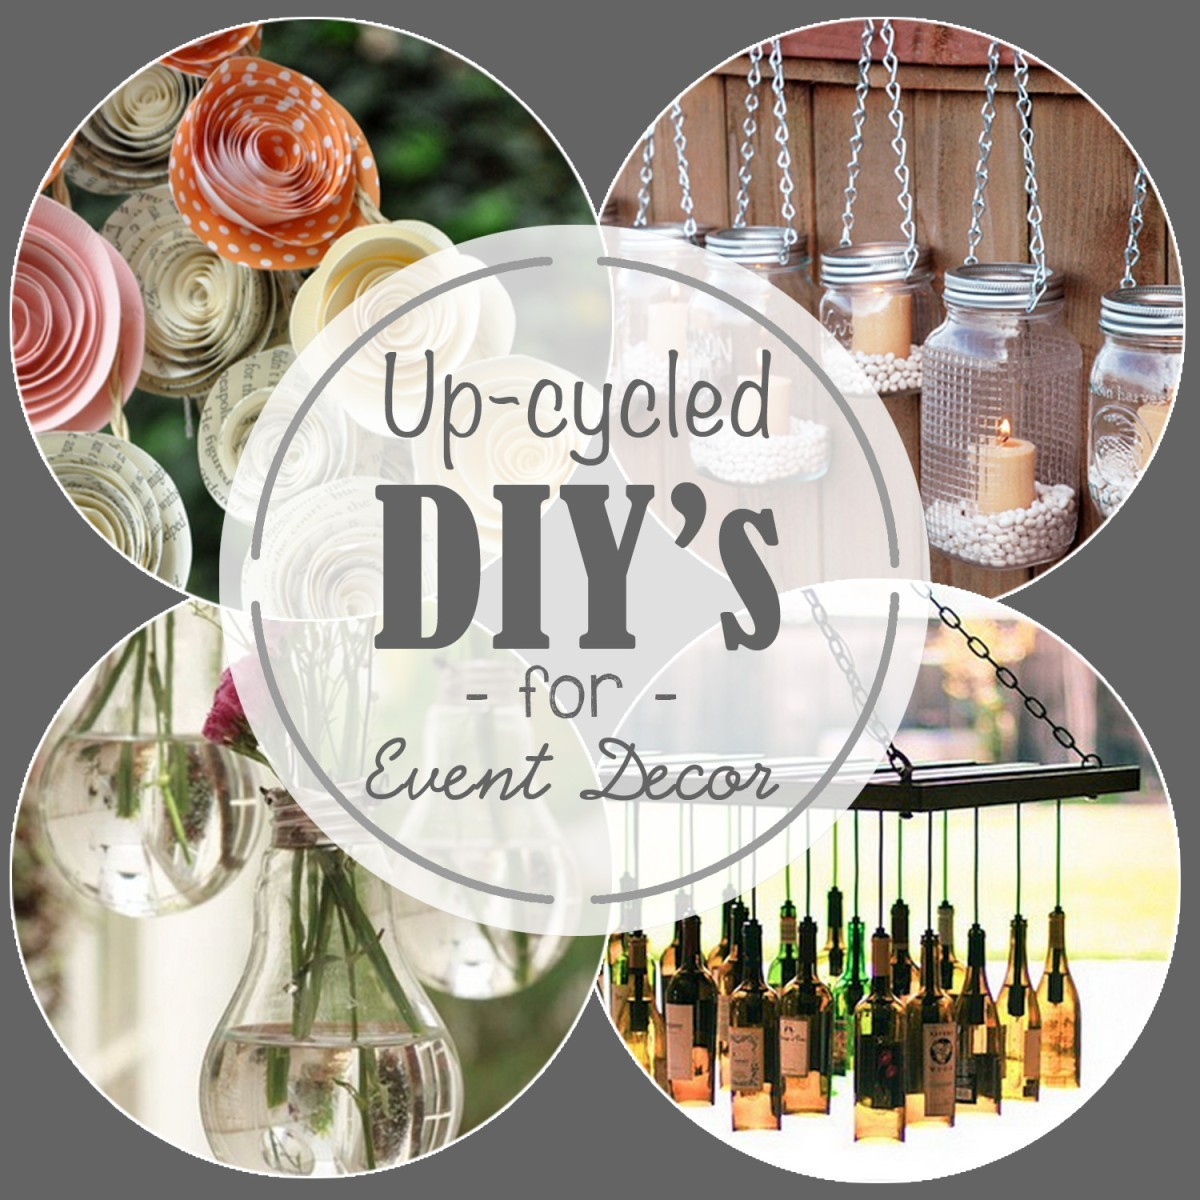 Upcycled DIY for Event Decor